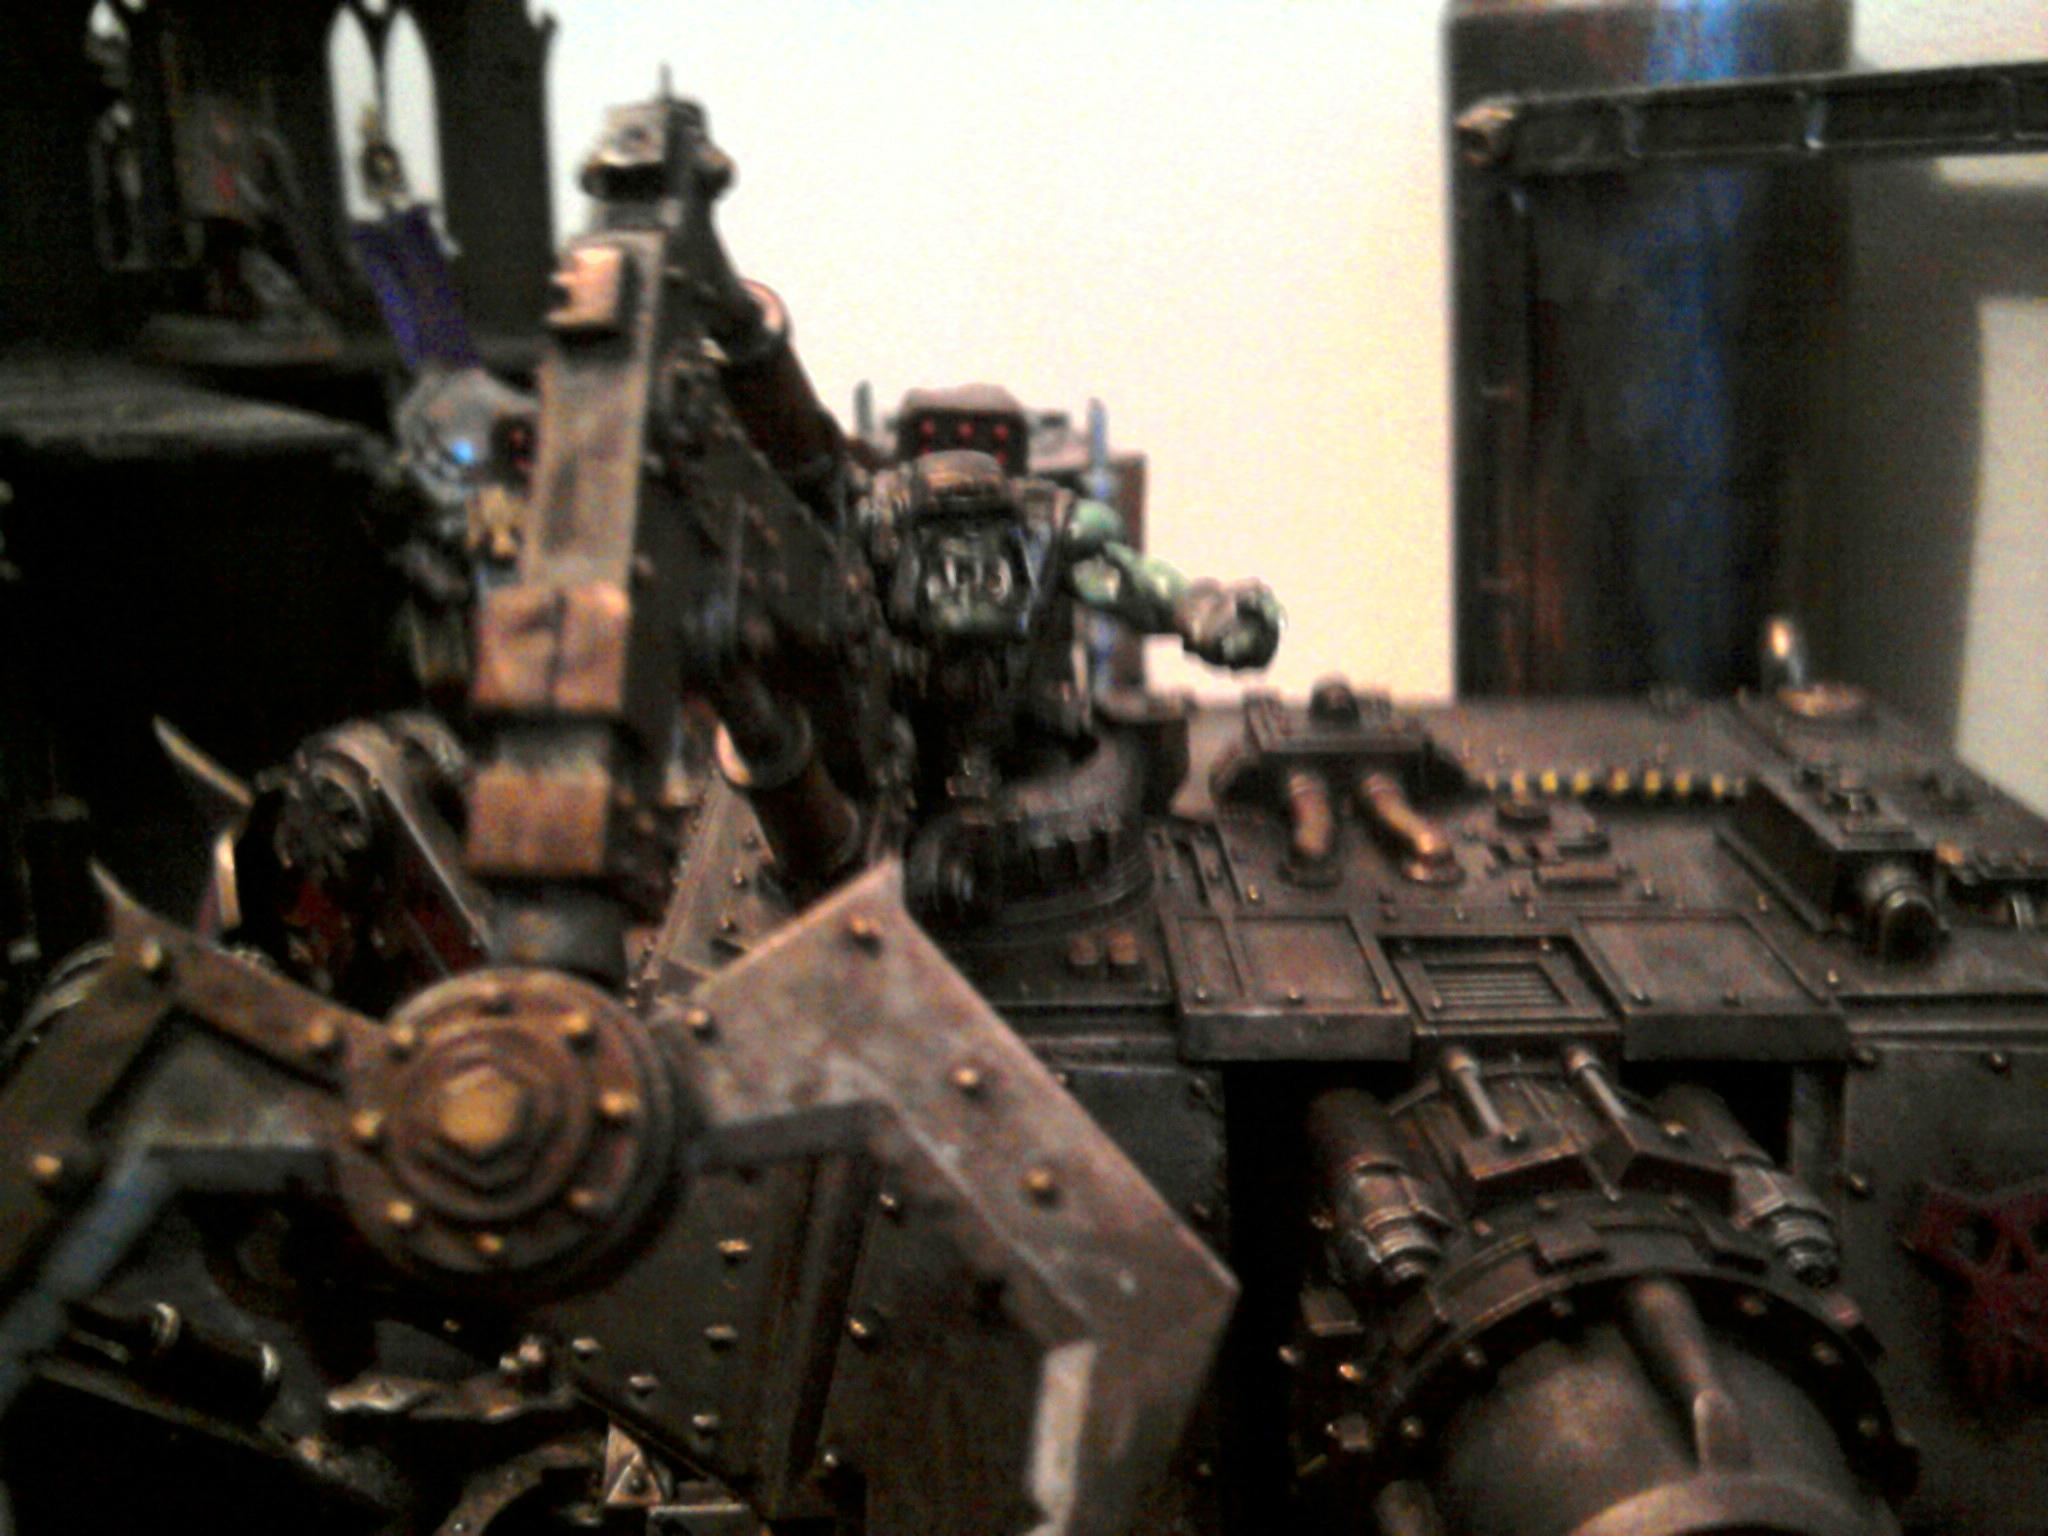 Apocalypse, Baneblade, Chaos, Conversion, Defiler, Noel, Orks, Progress, Shadowsword, Stormlord, Volcano, Work